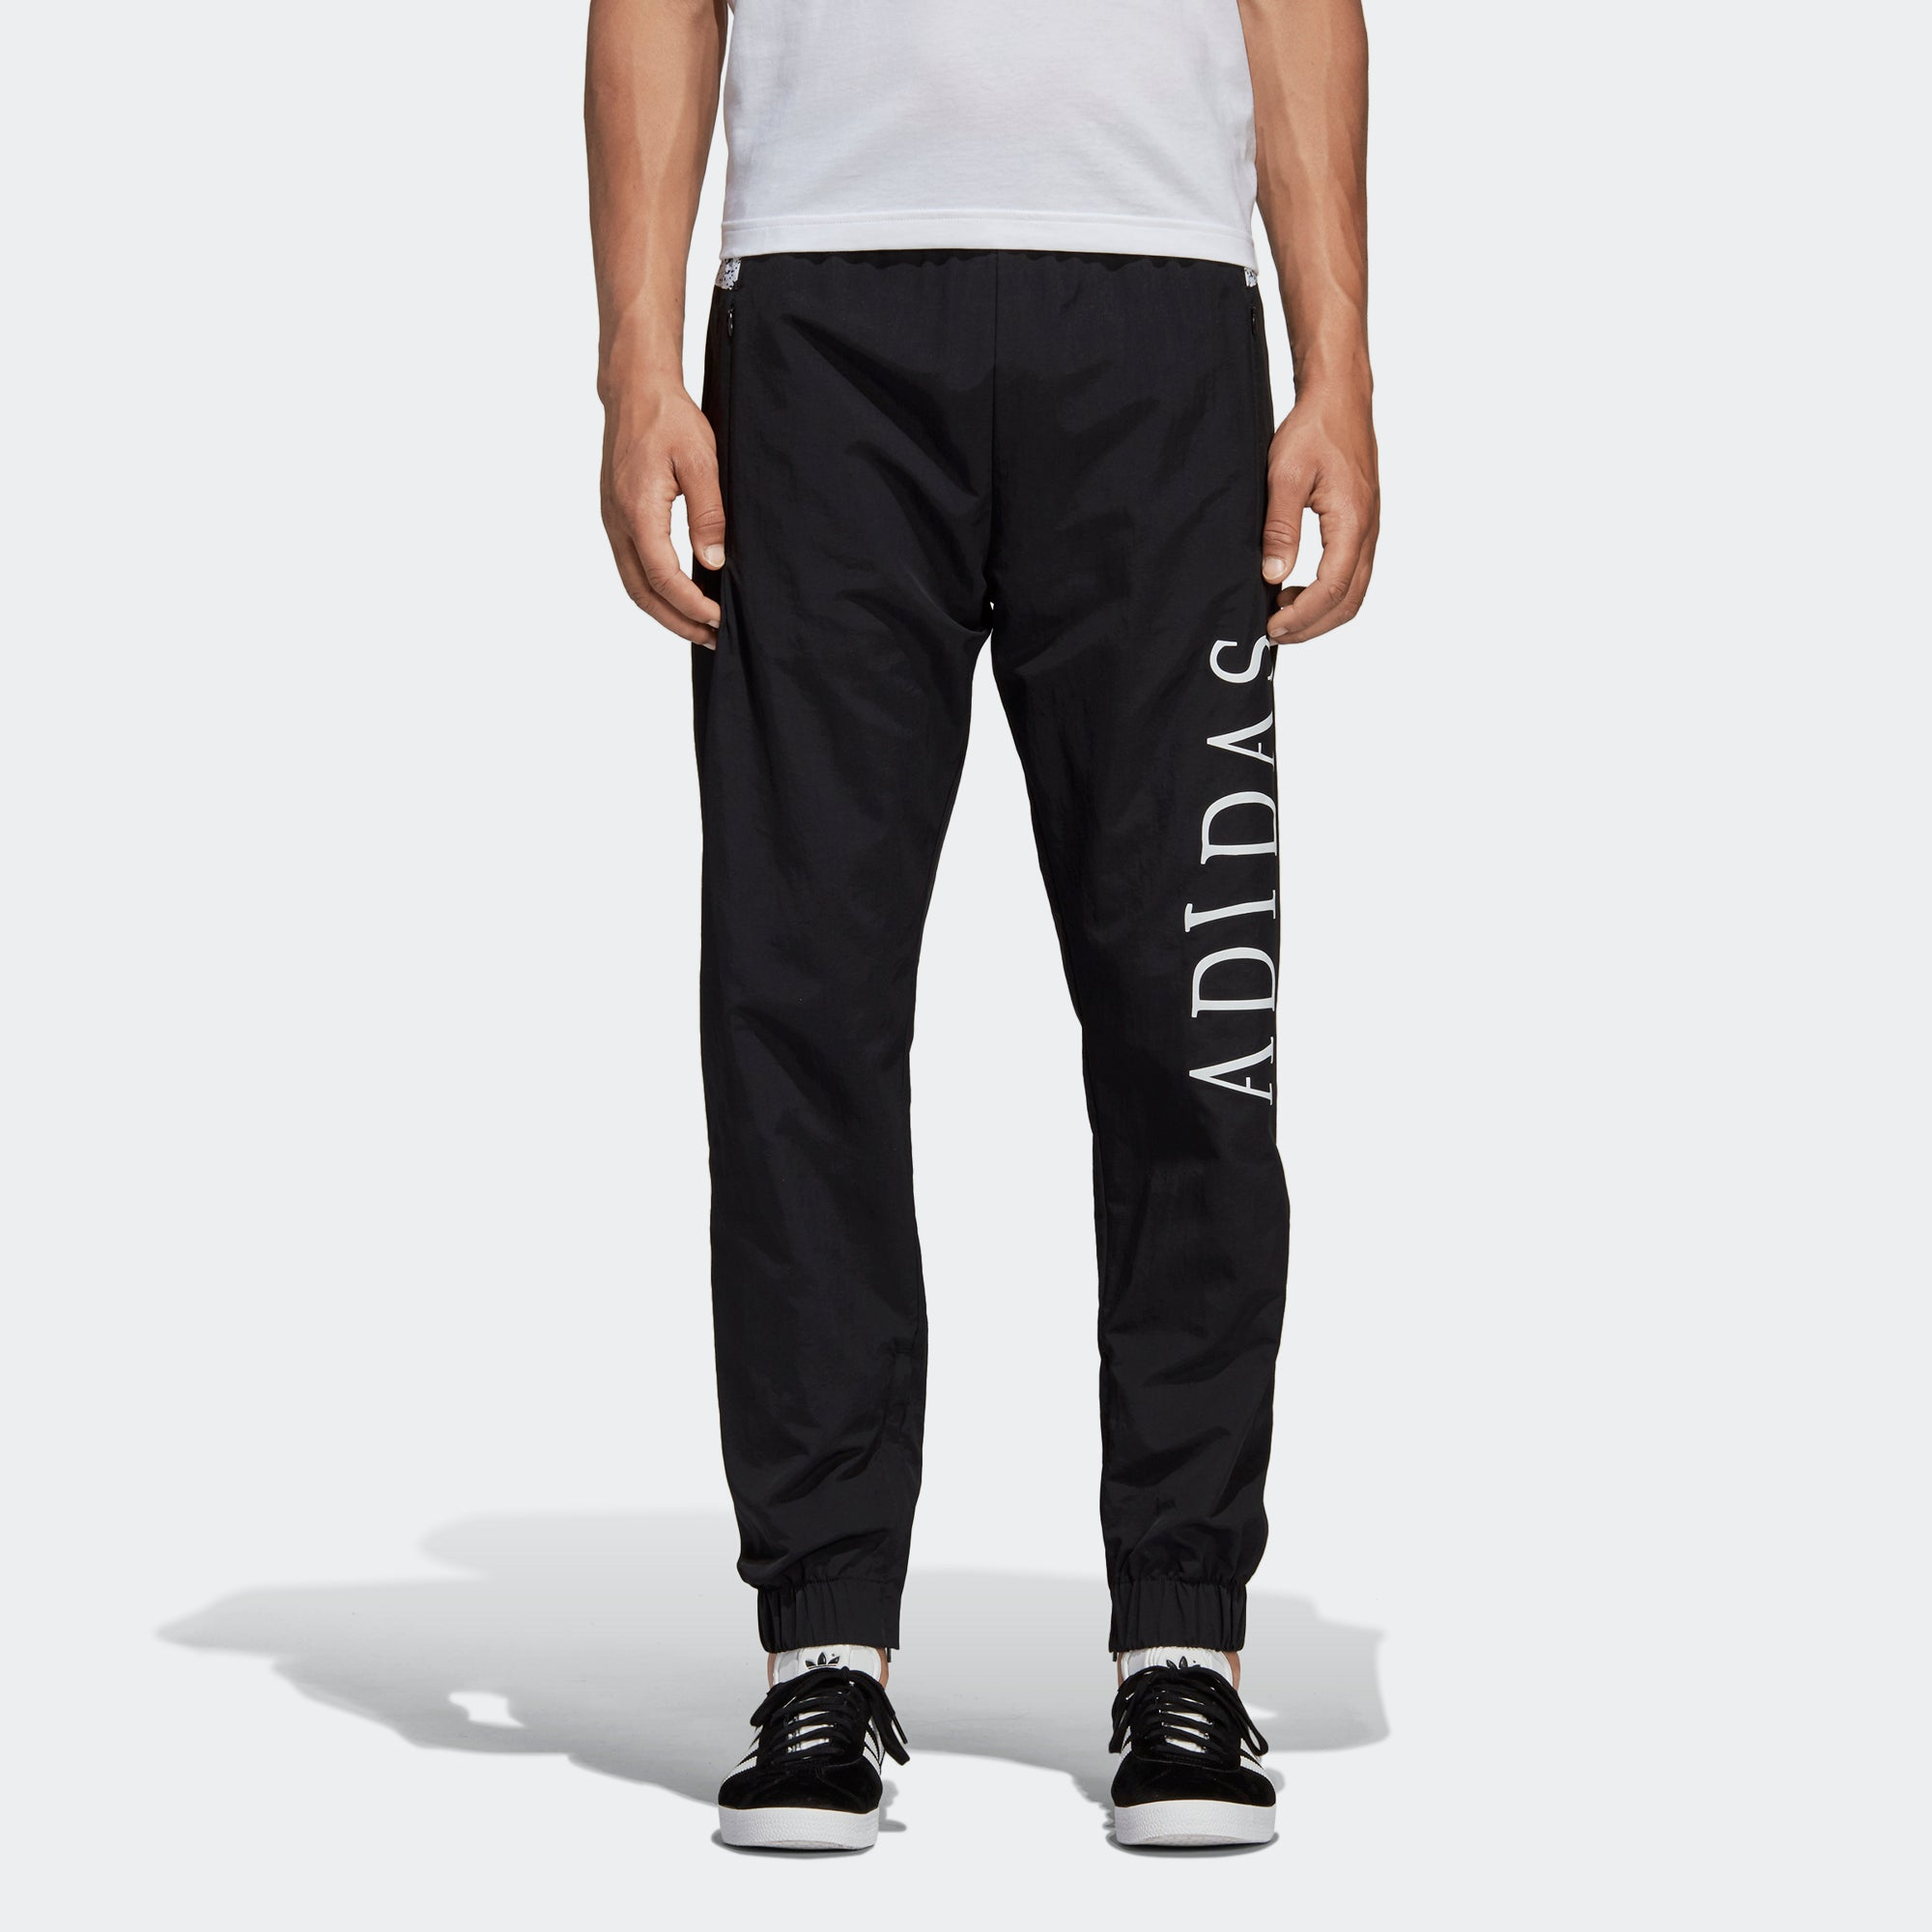 adidas Planetoid Track Pants DX6014 | Chicago City Sports